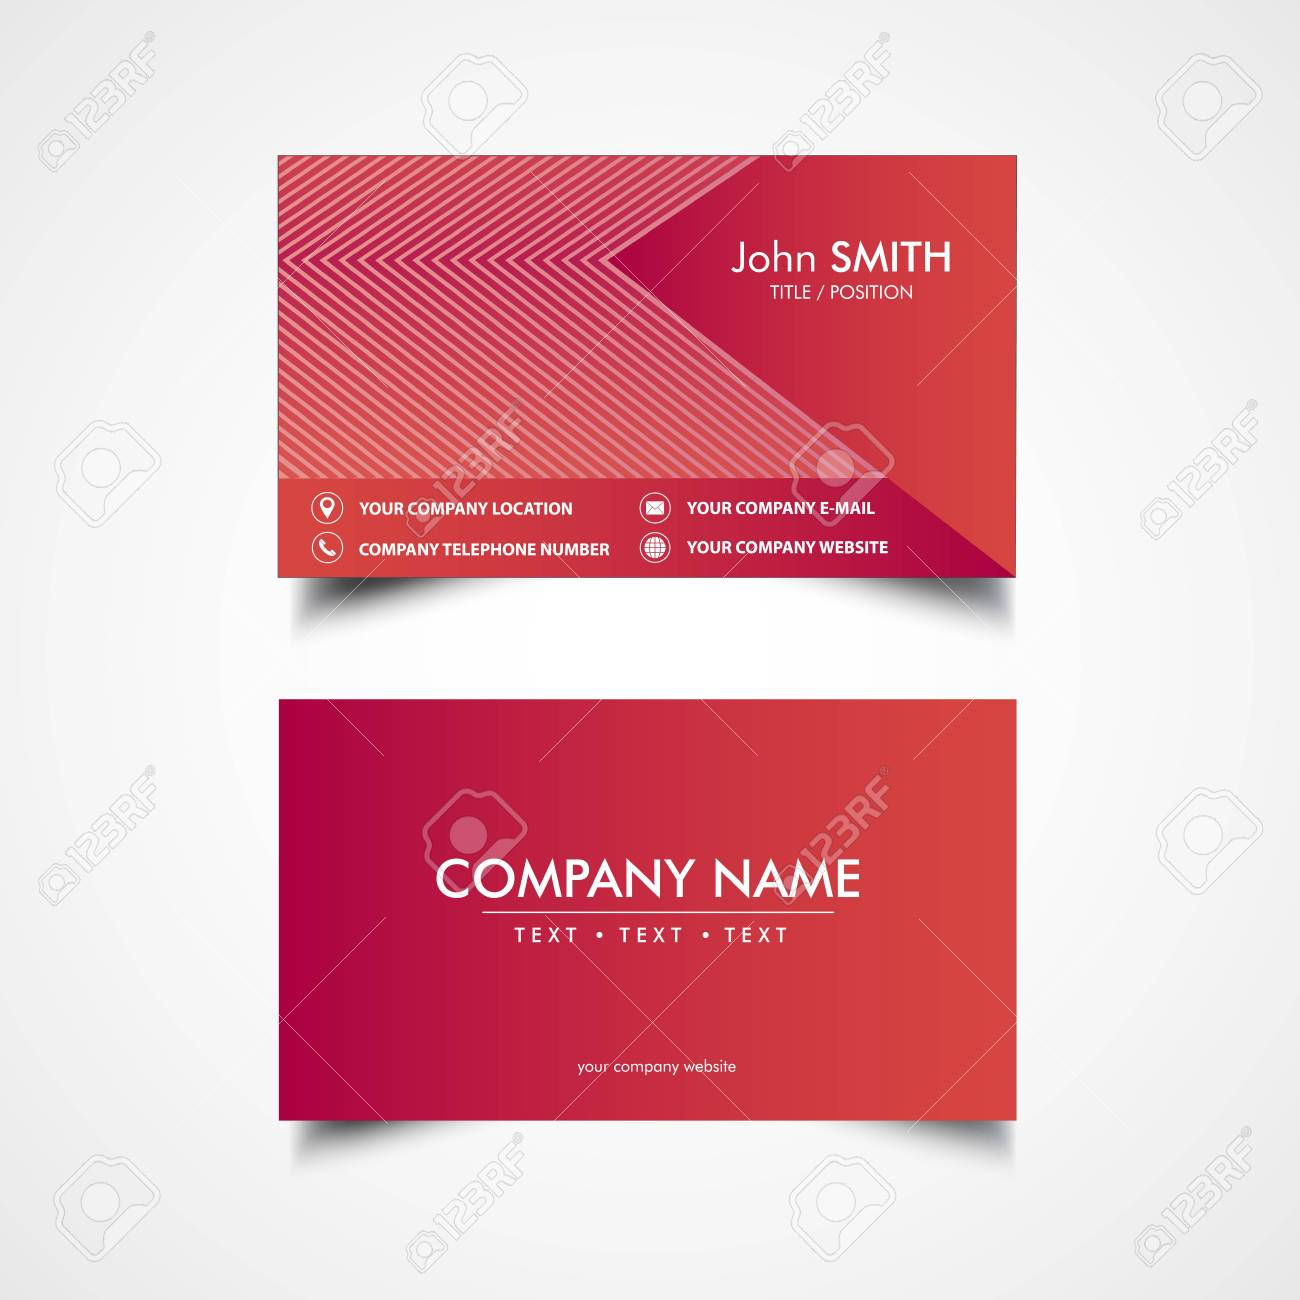 Simple business card template vector illustration eps file simple business card template vector illustration eps file stock vector 83413609 flashek Images